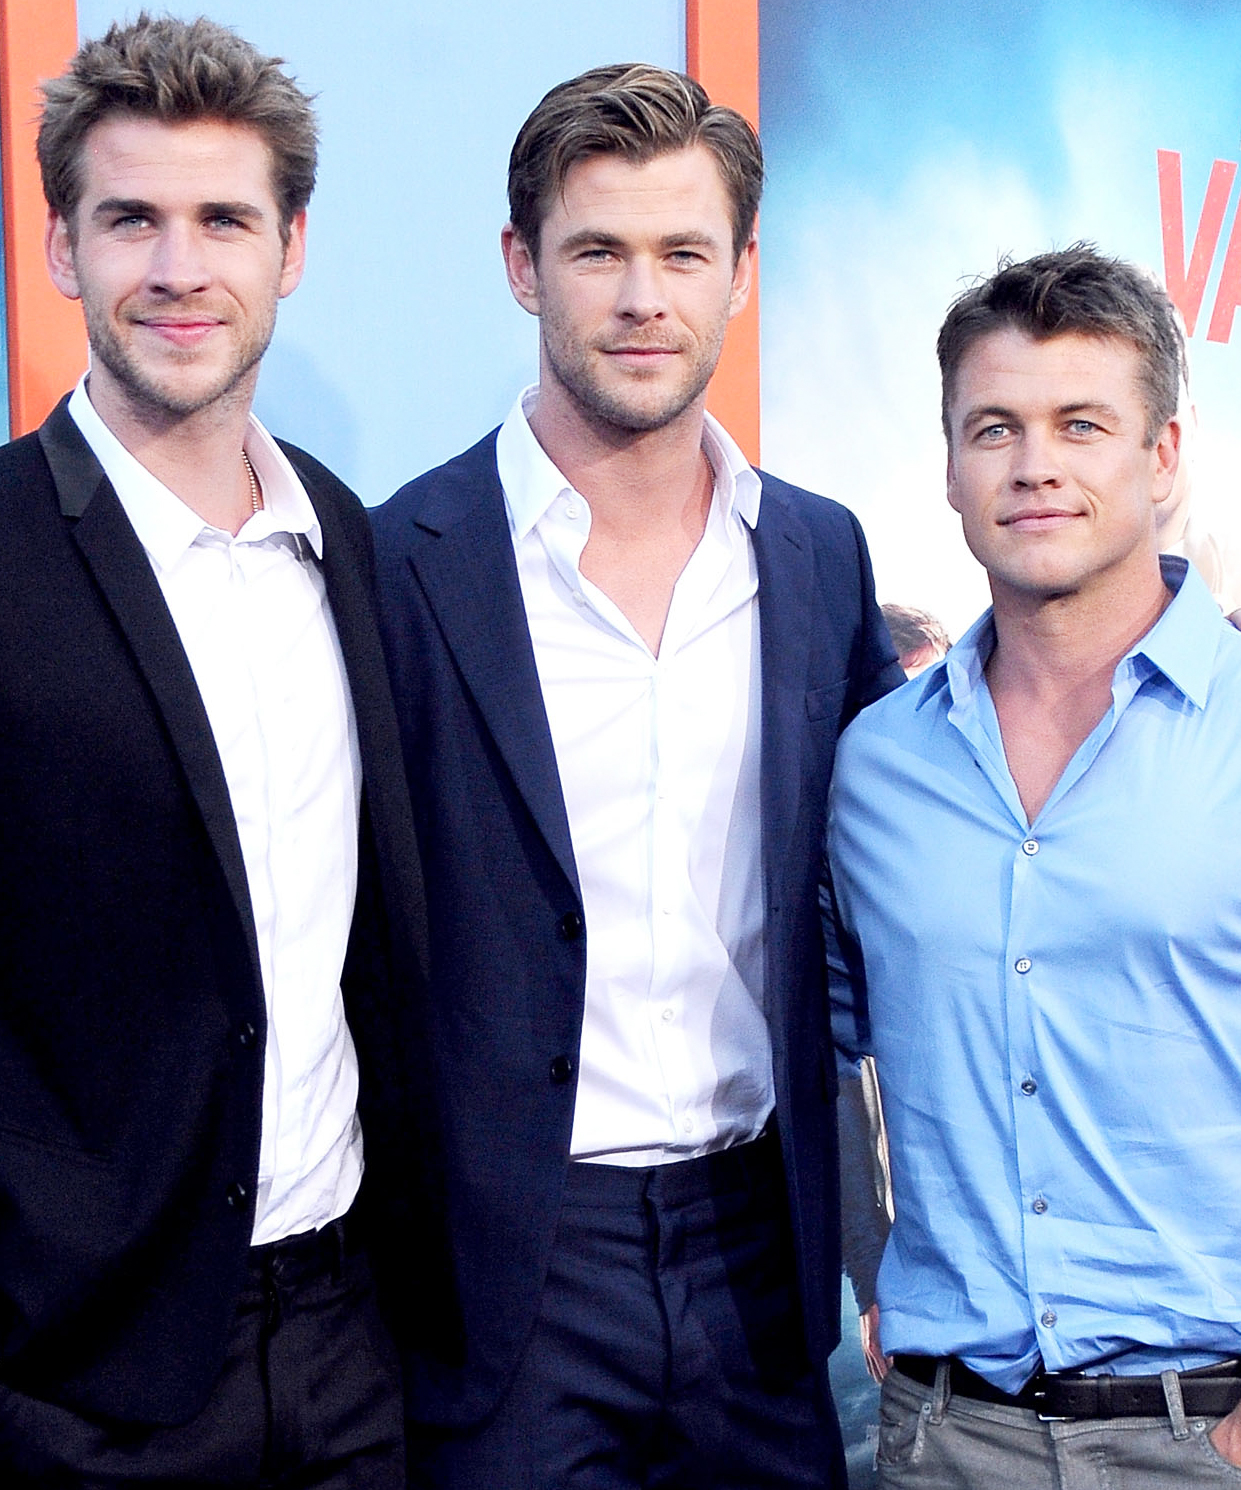 ¿Cuánto mide Liam Hemsworth? - Altura - Real height 012016-hemsworth-brothers_1